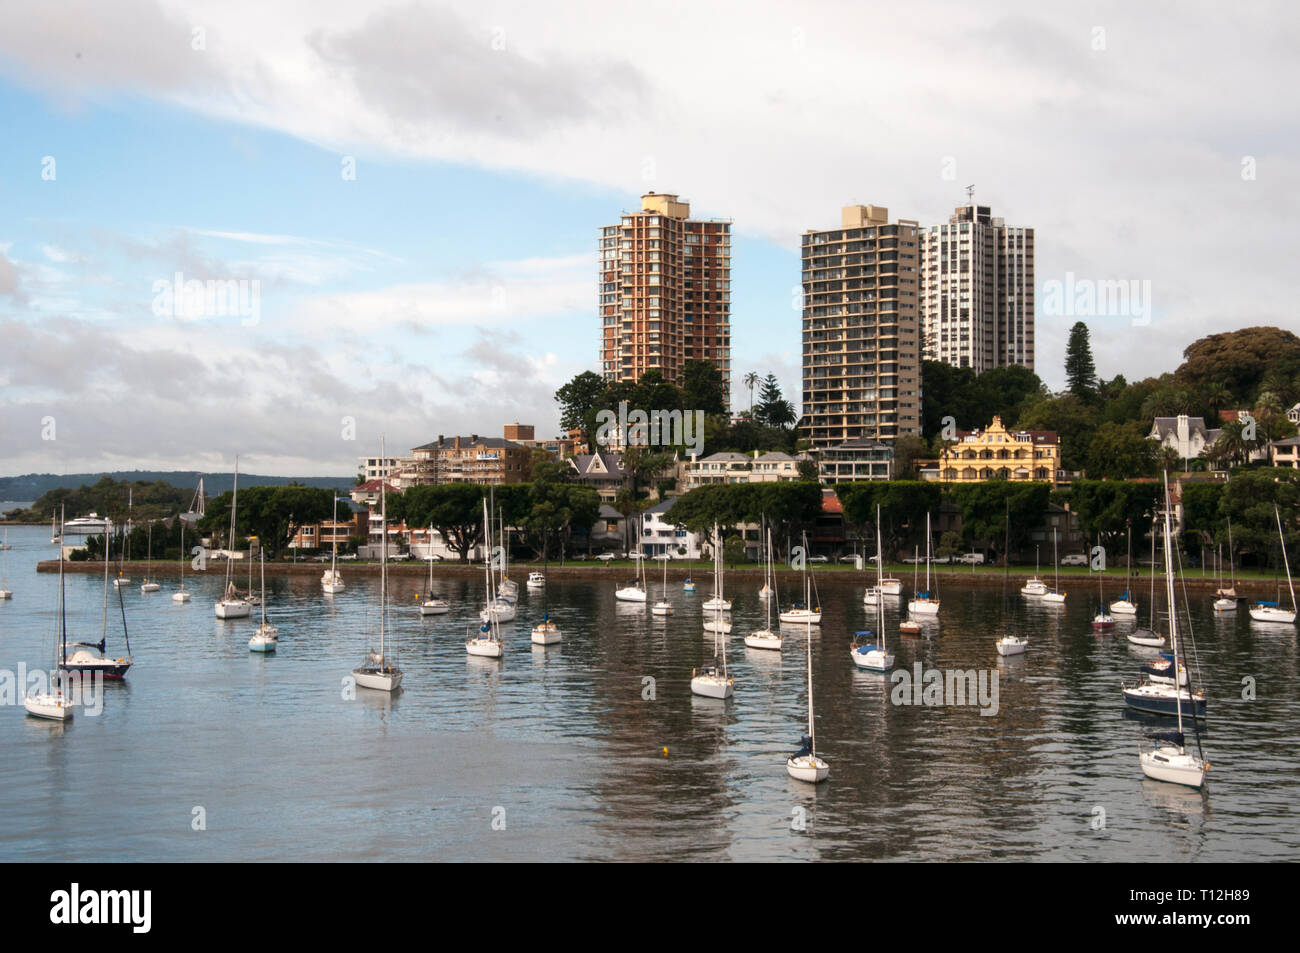 Darling Point across Rushcutters Bay, Sydney Stock Photo